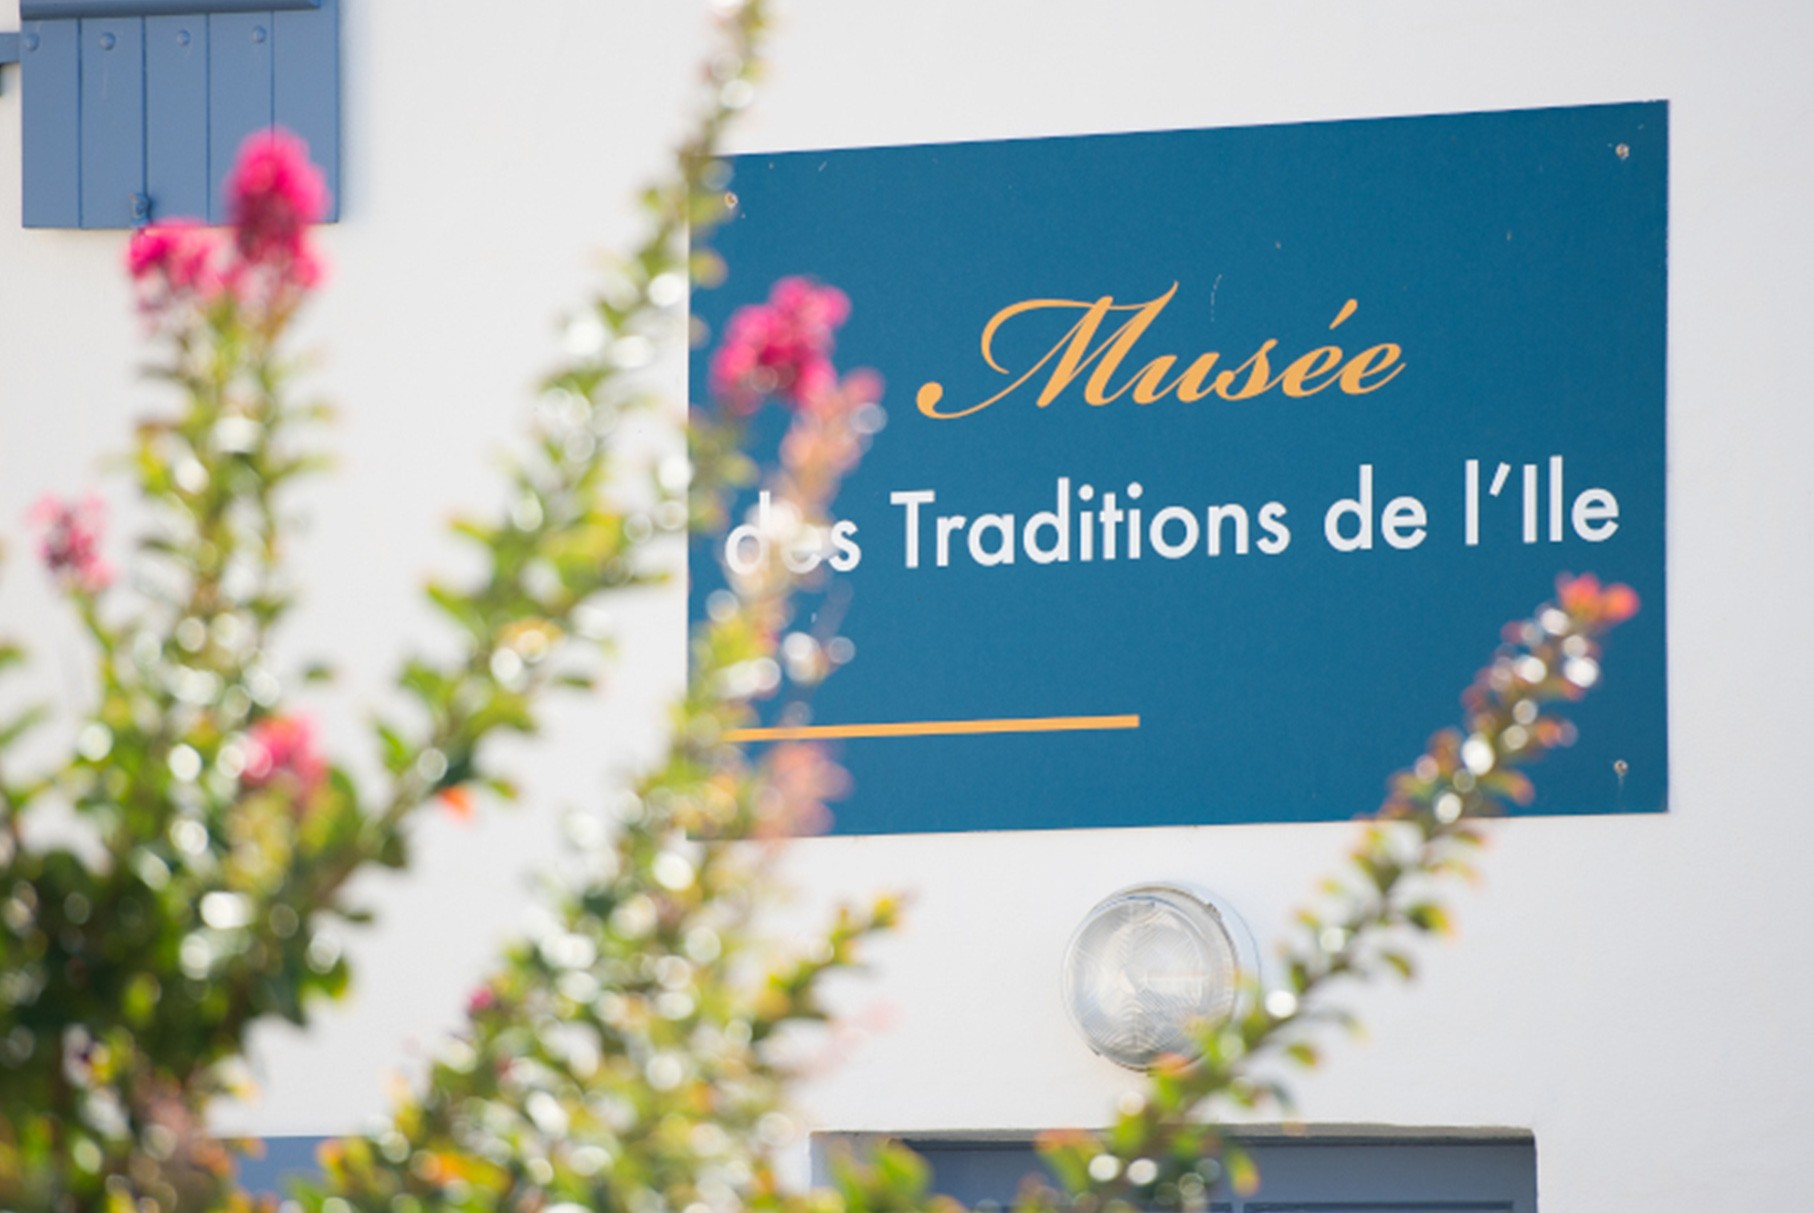 musee-traditions-patrimoine-6640555